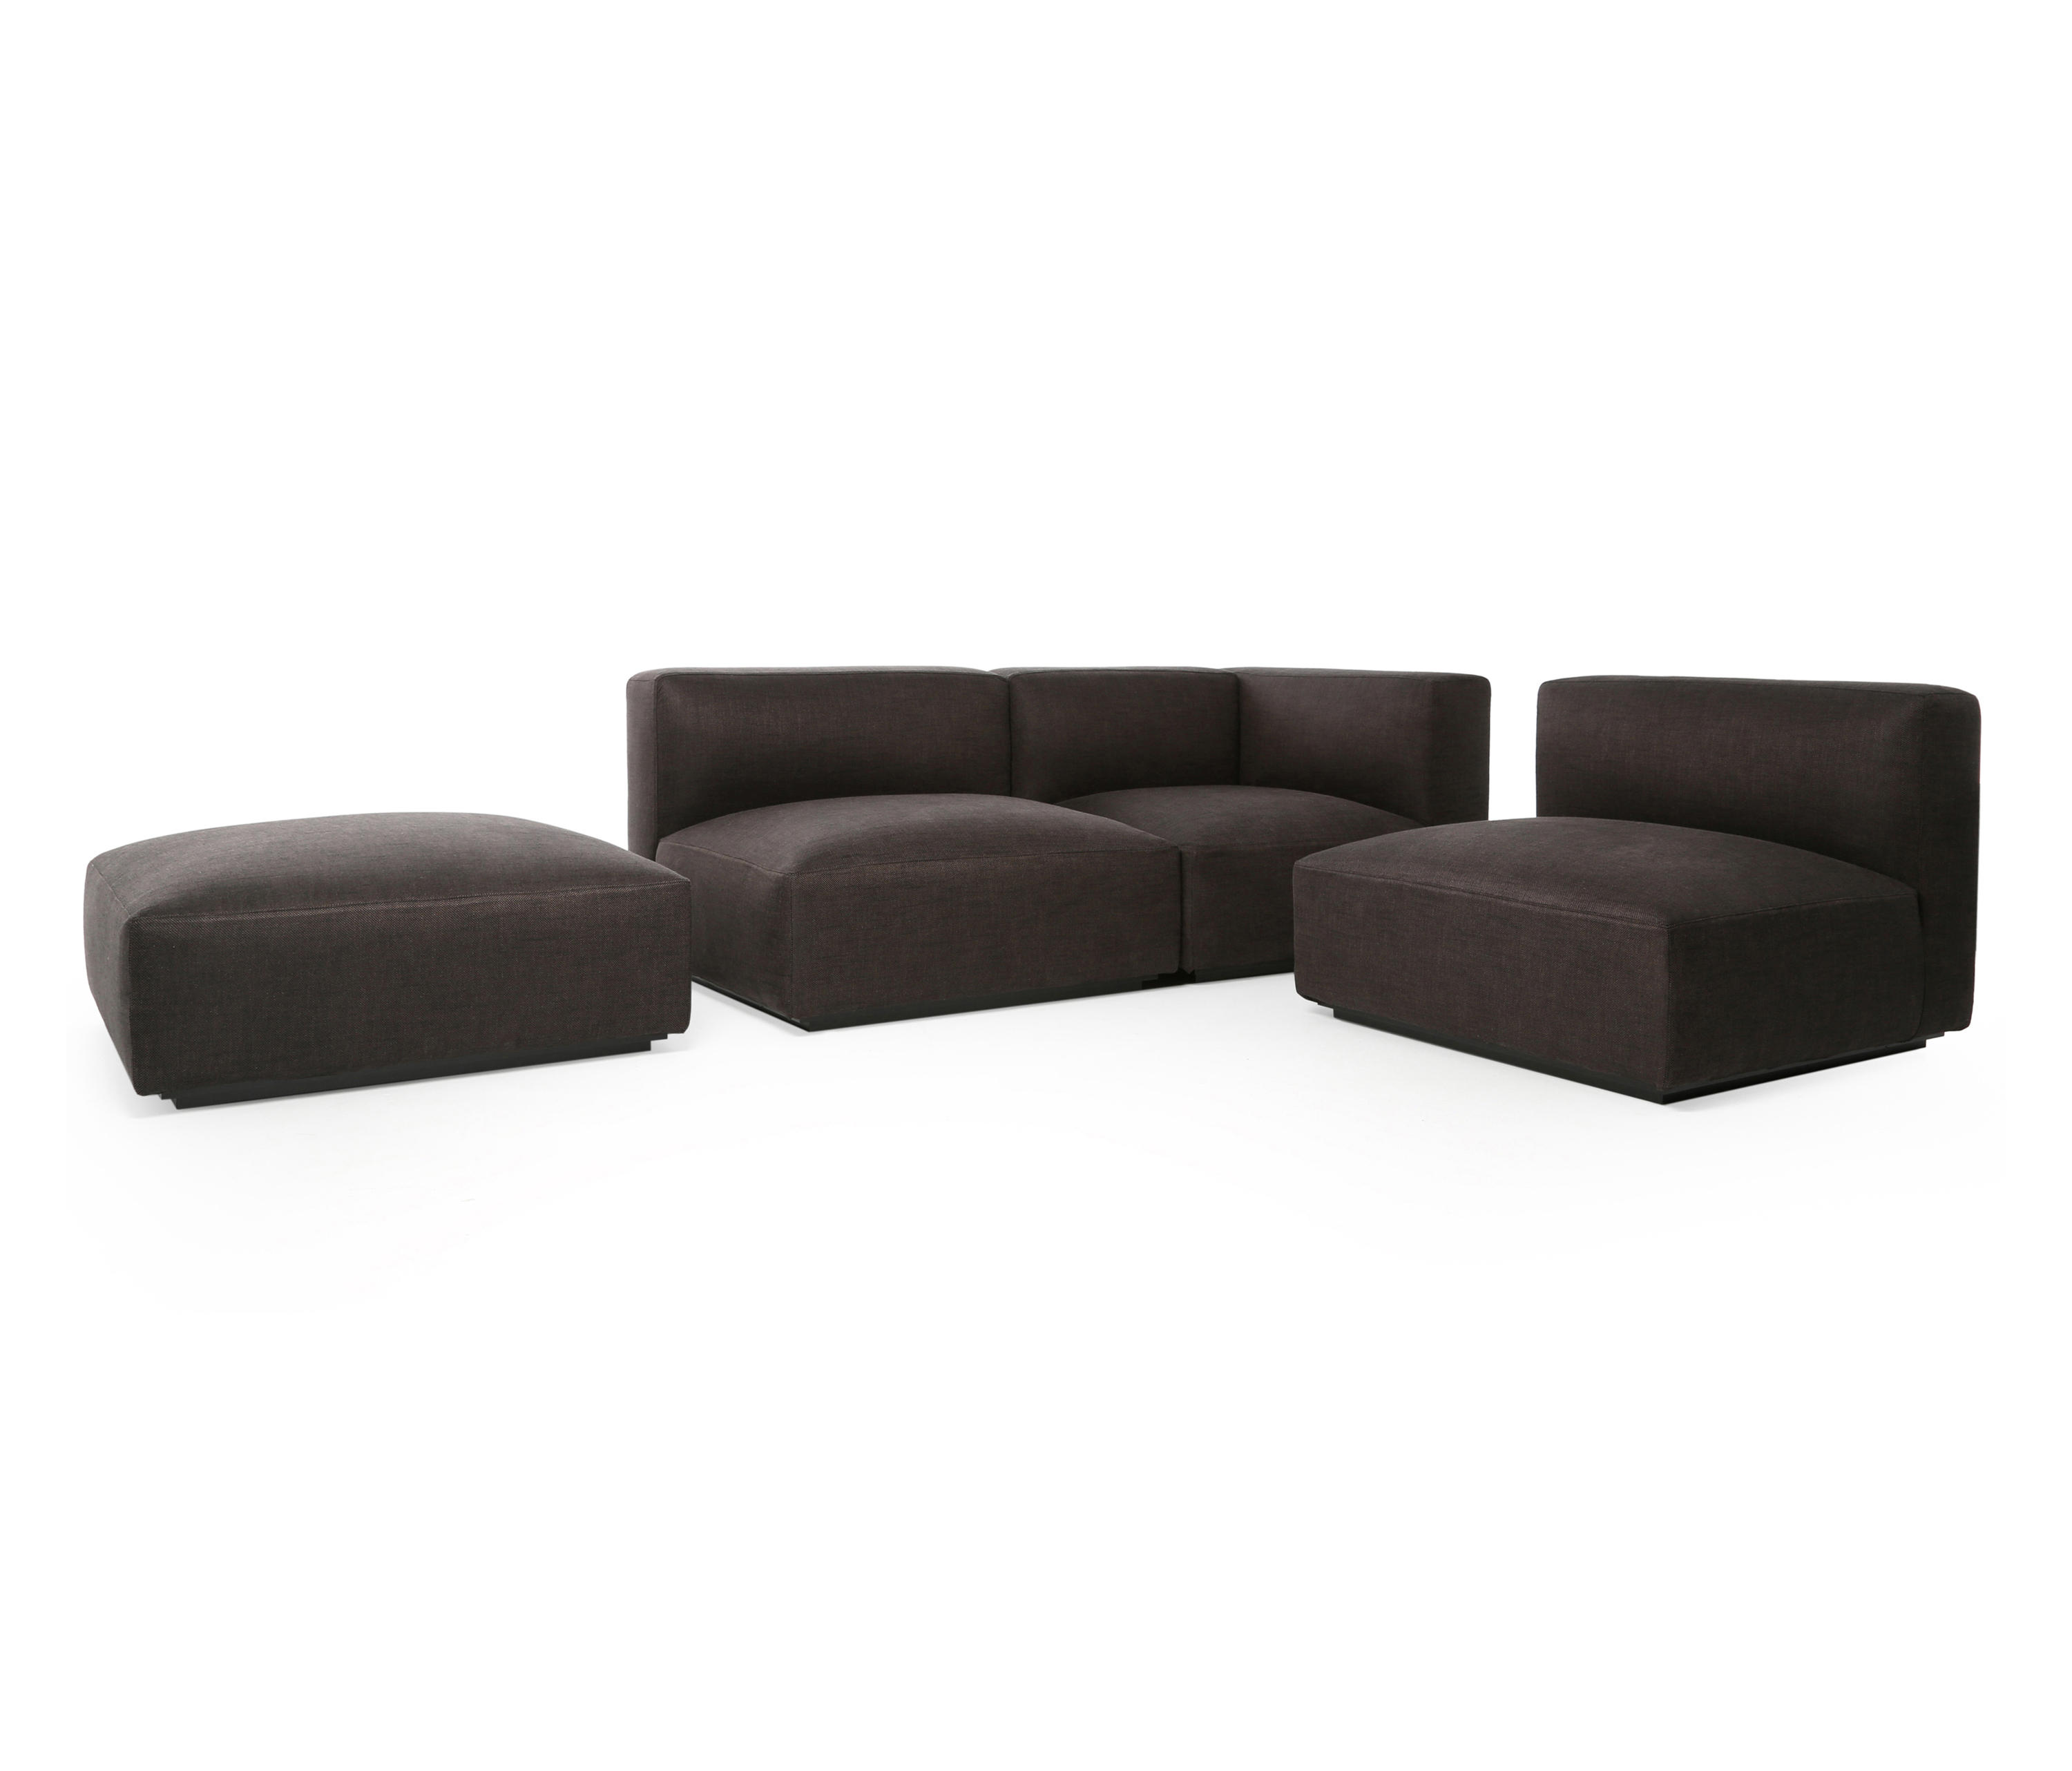 Large Modular Lounge Hayward Large Modular Sofa Lounge Sofas From The Sofa